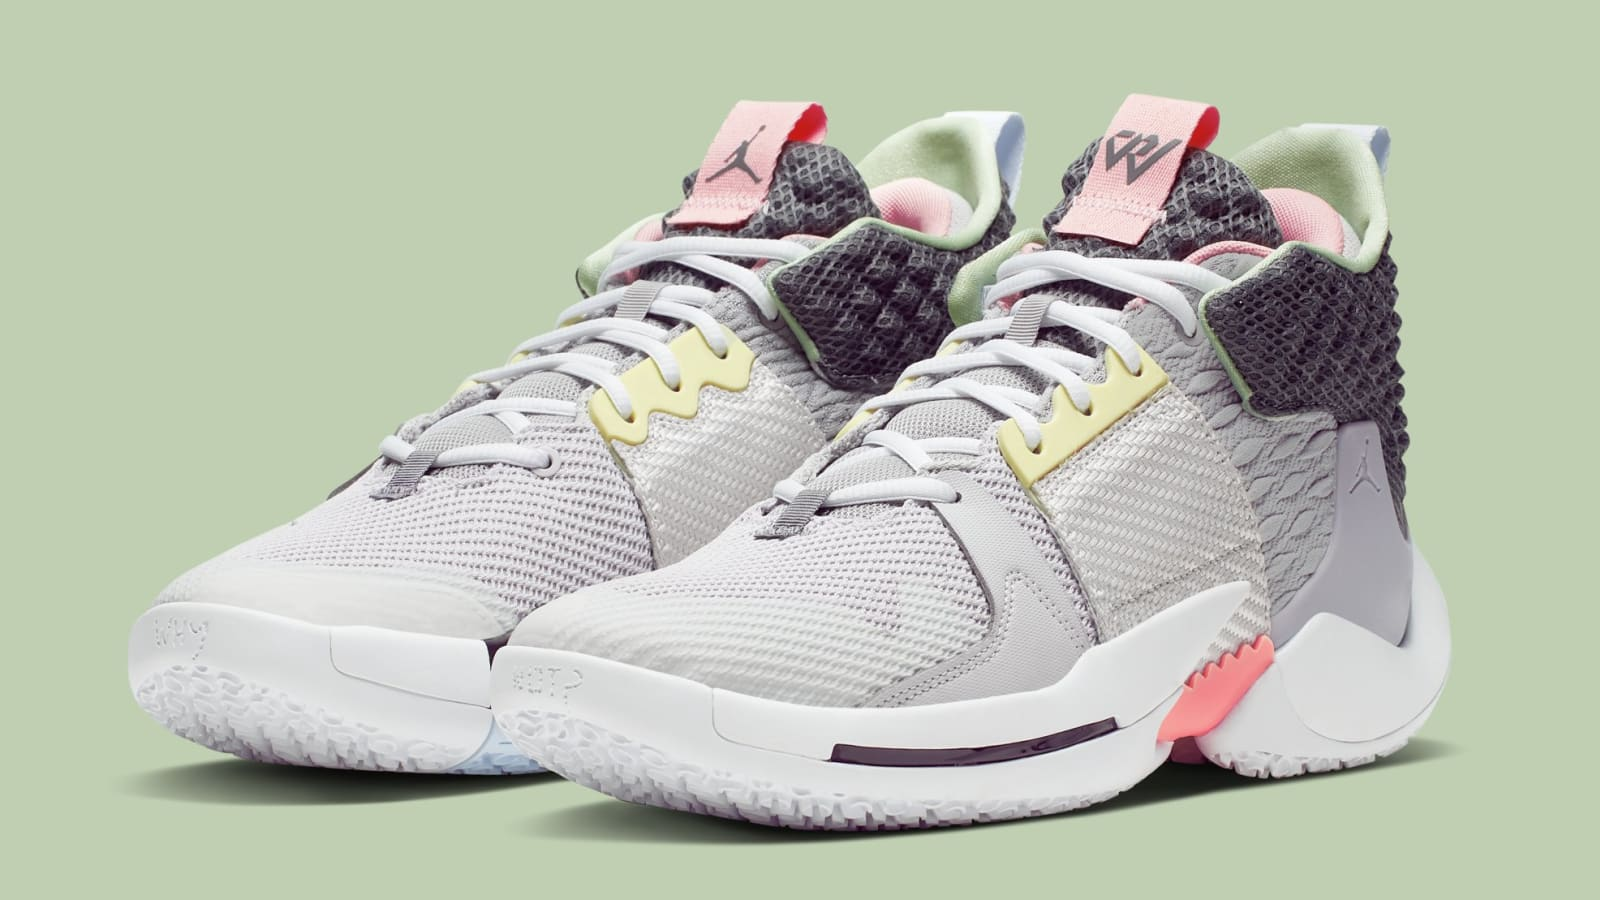 Russell Westbrook Honors Late Best Friend With New Why Not Zer0.2